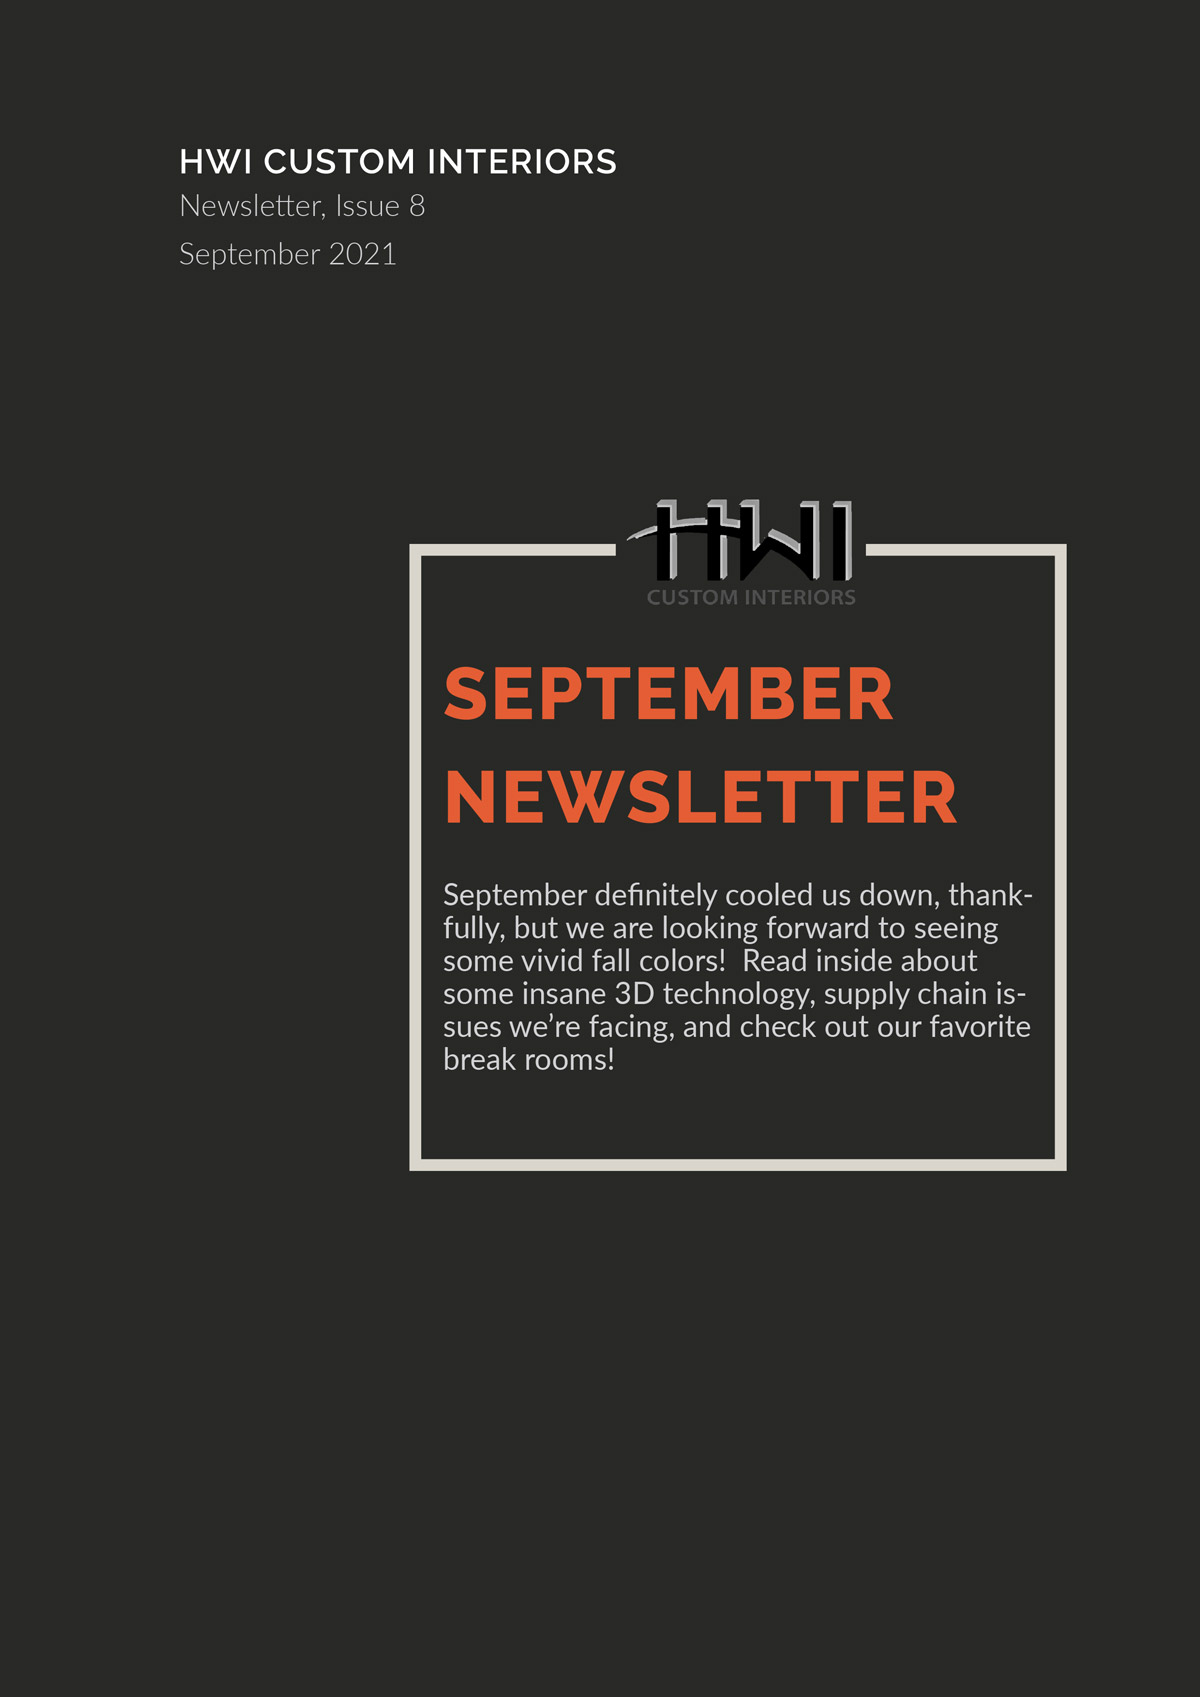 HWI Custom Interiors September Newsletter. 3D technology, supply chain issues, and our favorite break rooms!